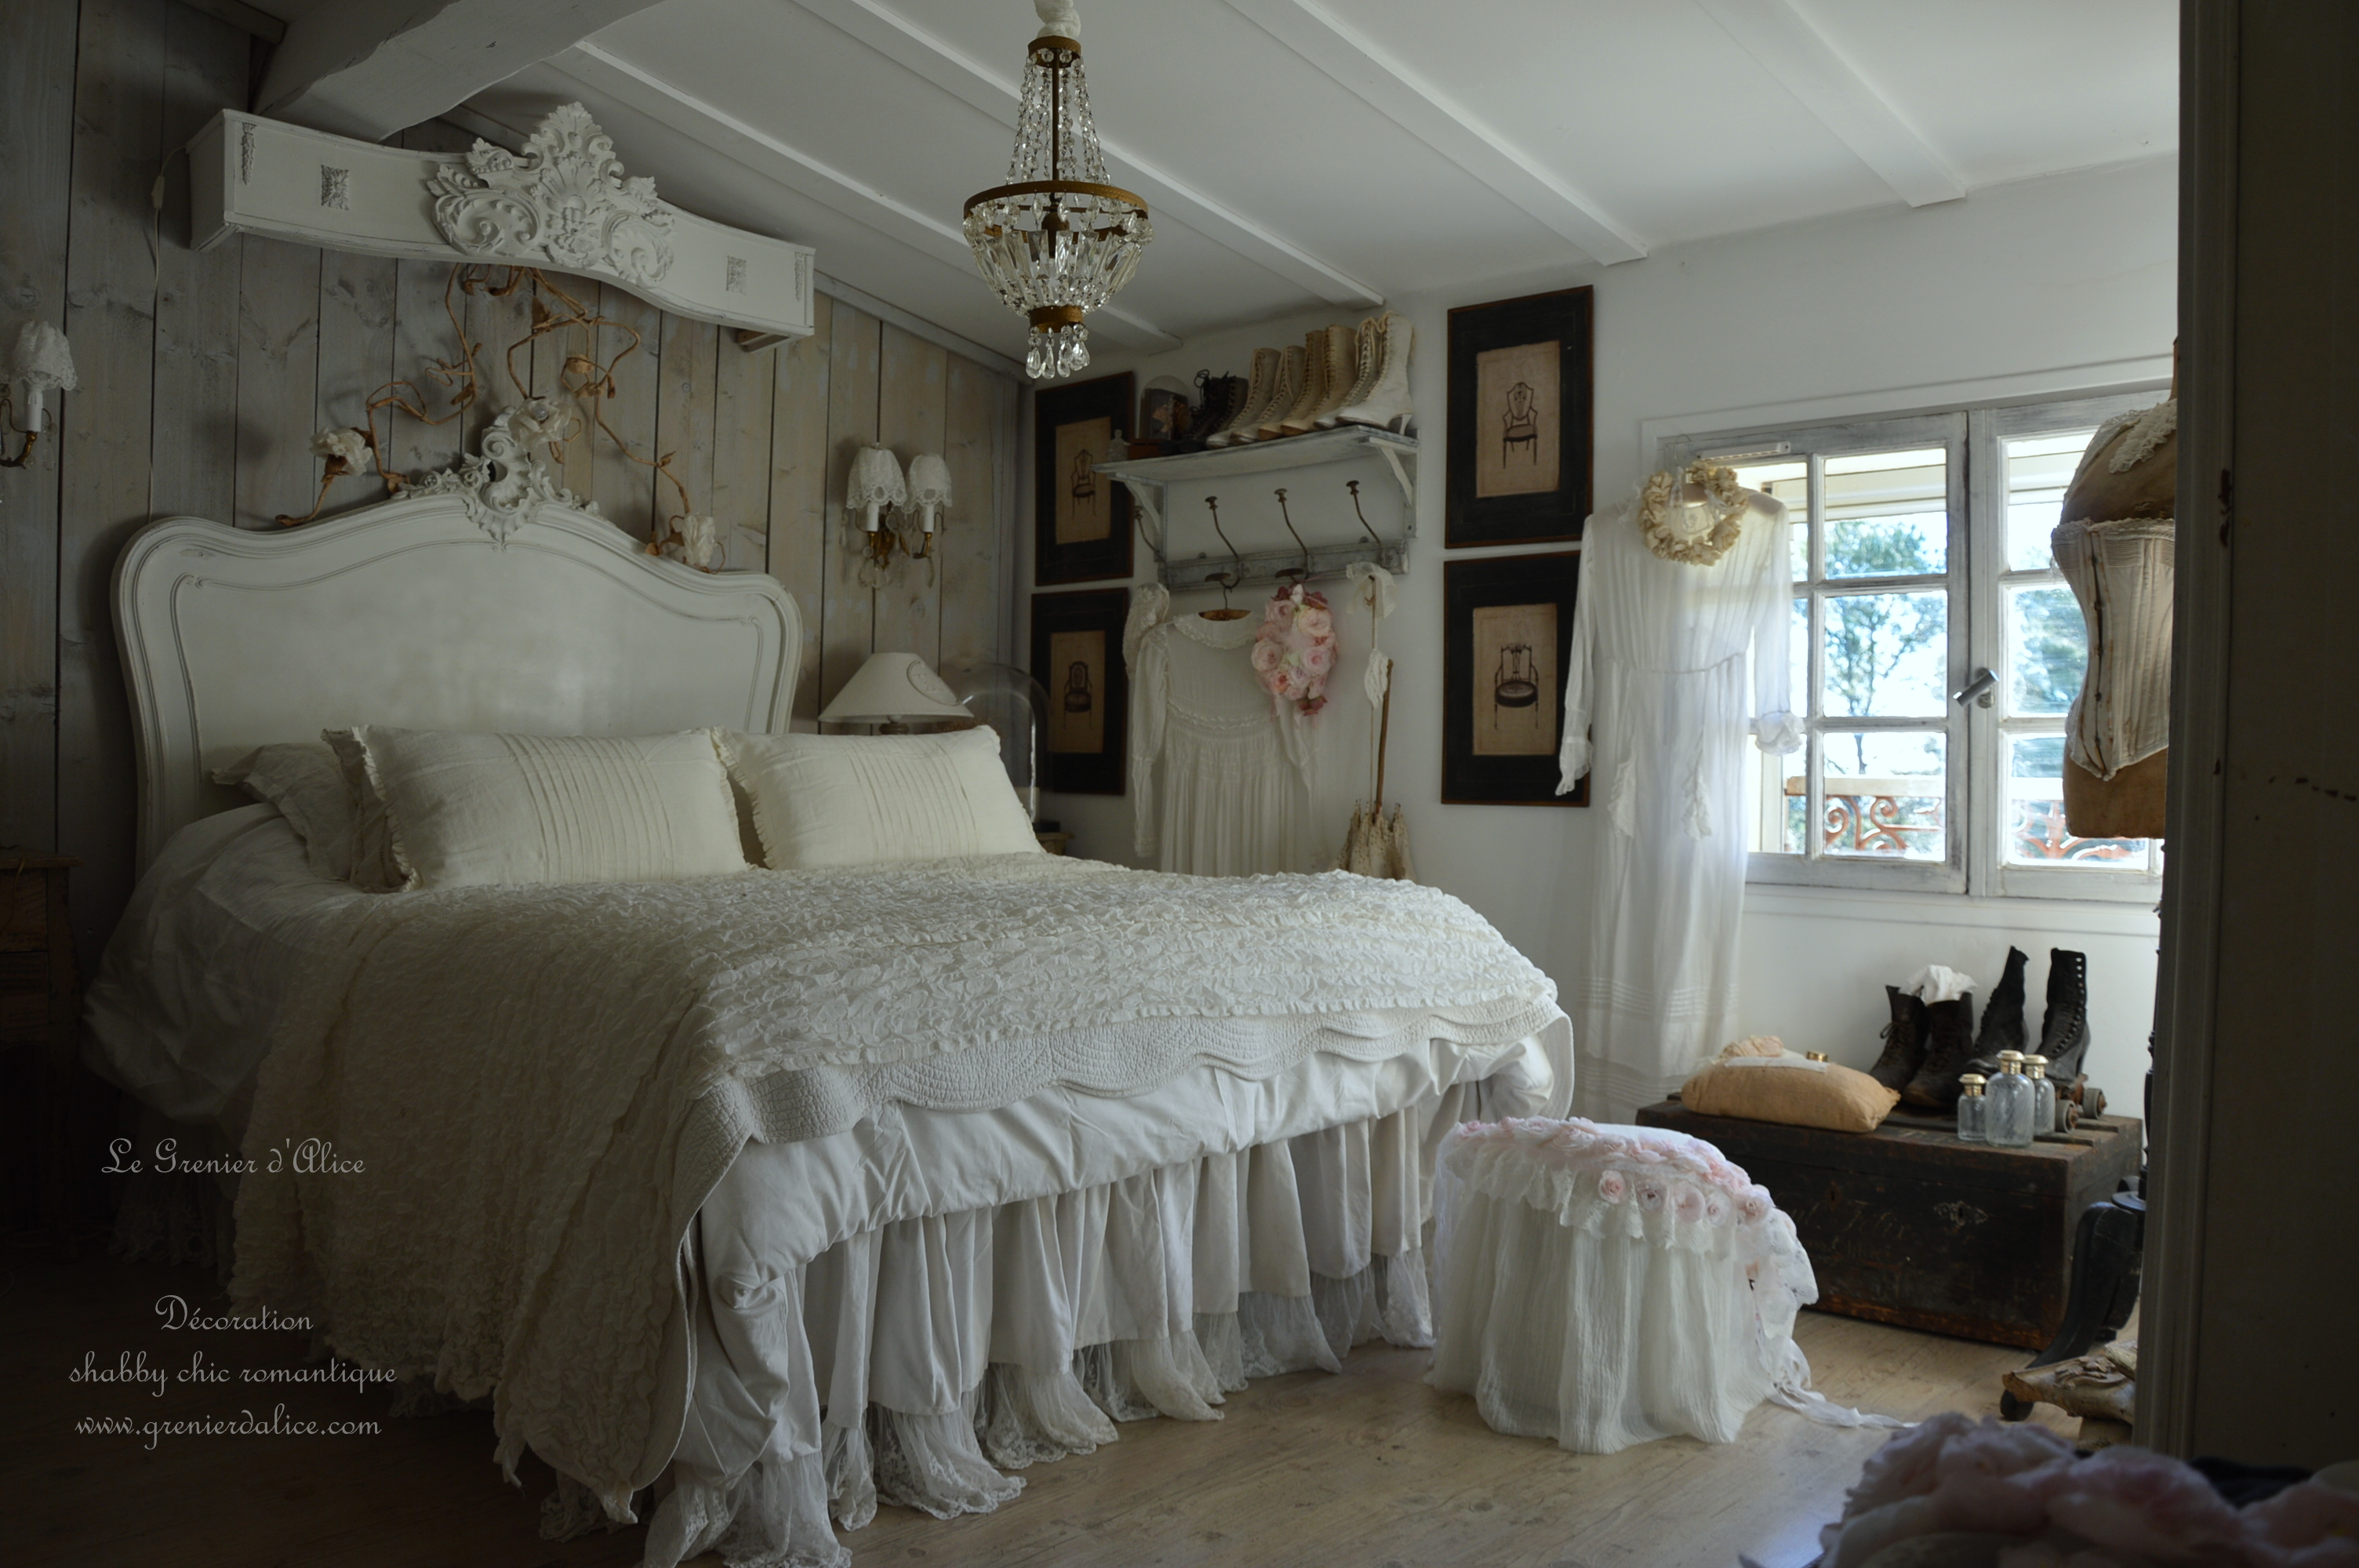 le grenier d 39 alice shabby chic et romantique french decor part 2. Black Bedroom Furniture Sets. Home Design Ideas